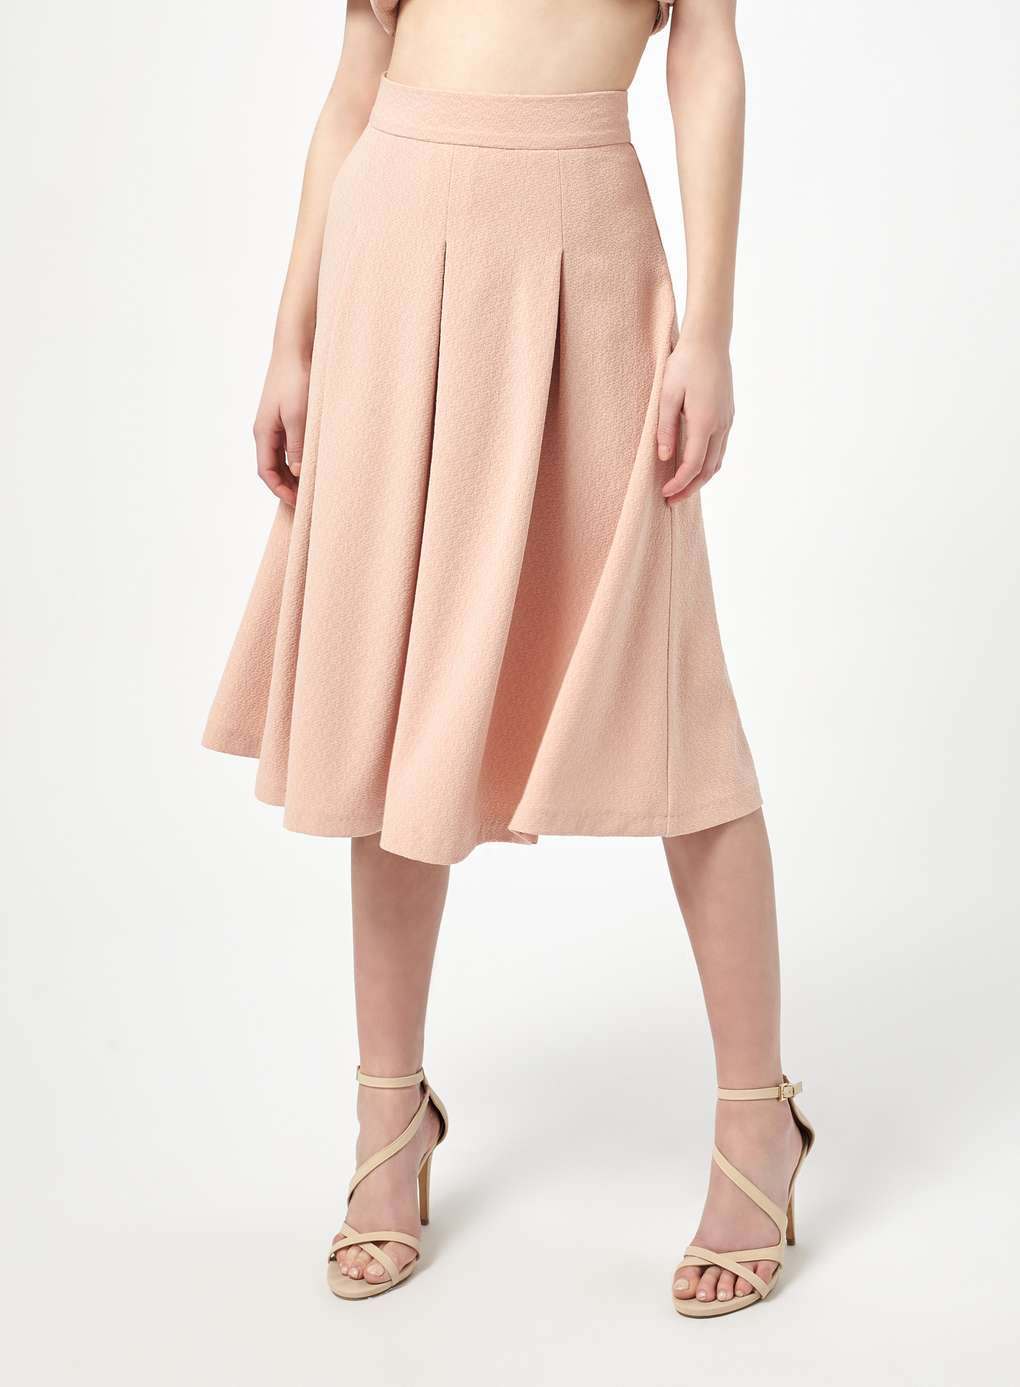 MISS SELFRIDGE NUDE CREPE BOX PLEAT MIDI SKIRT